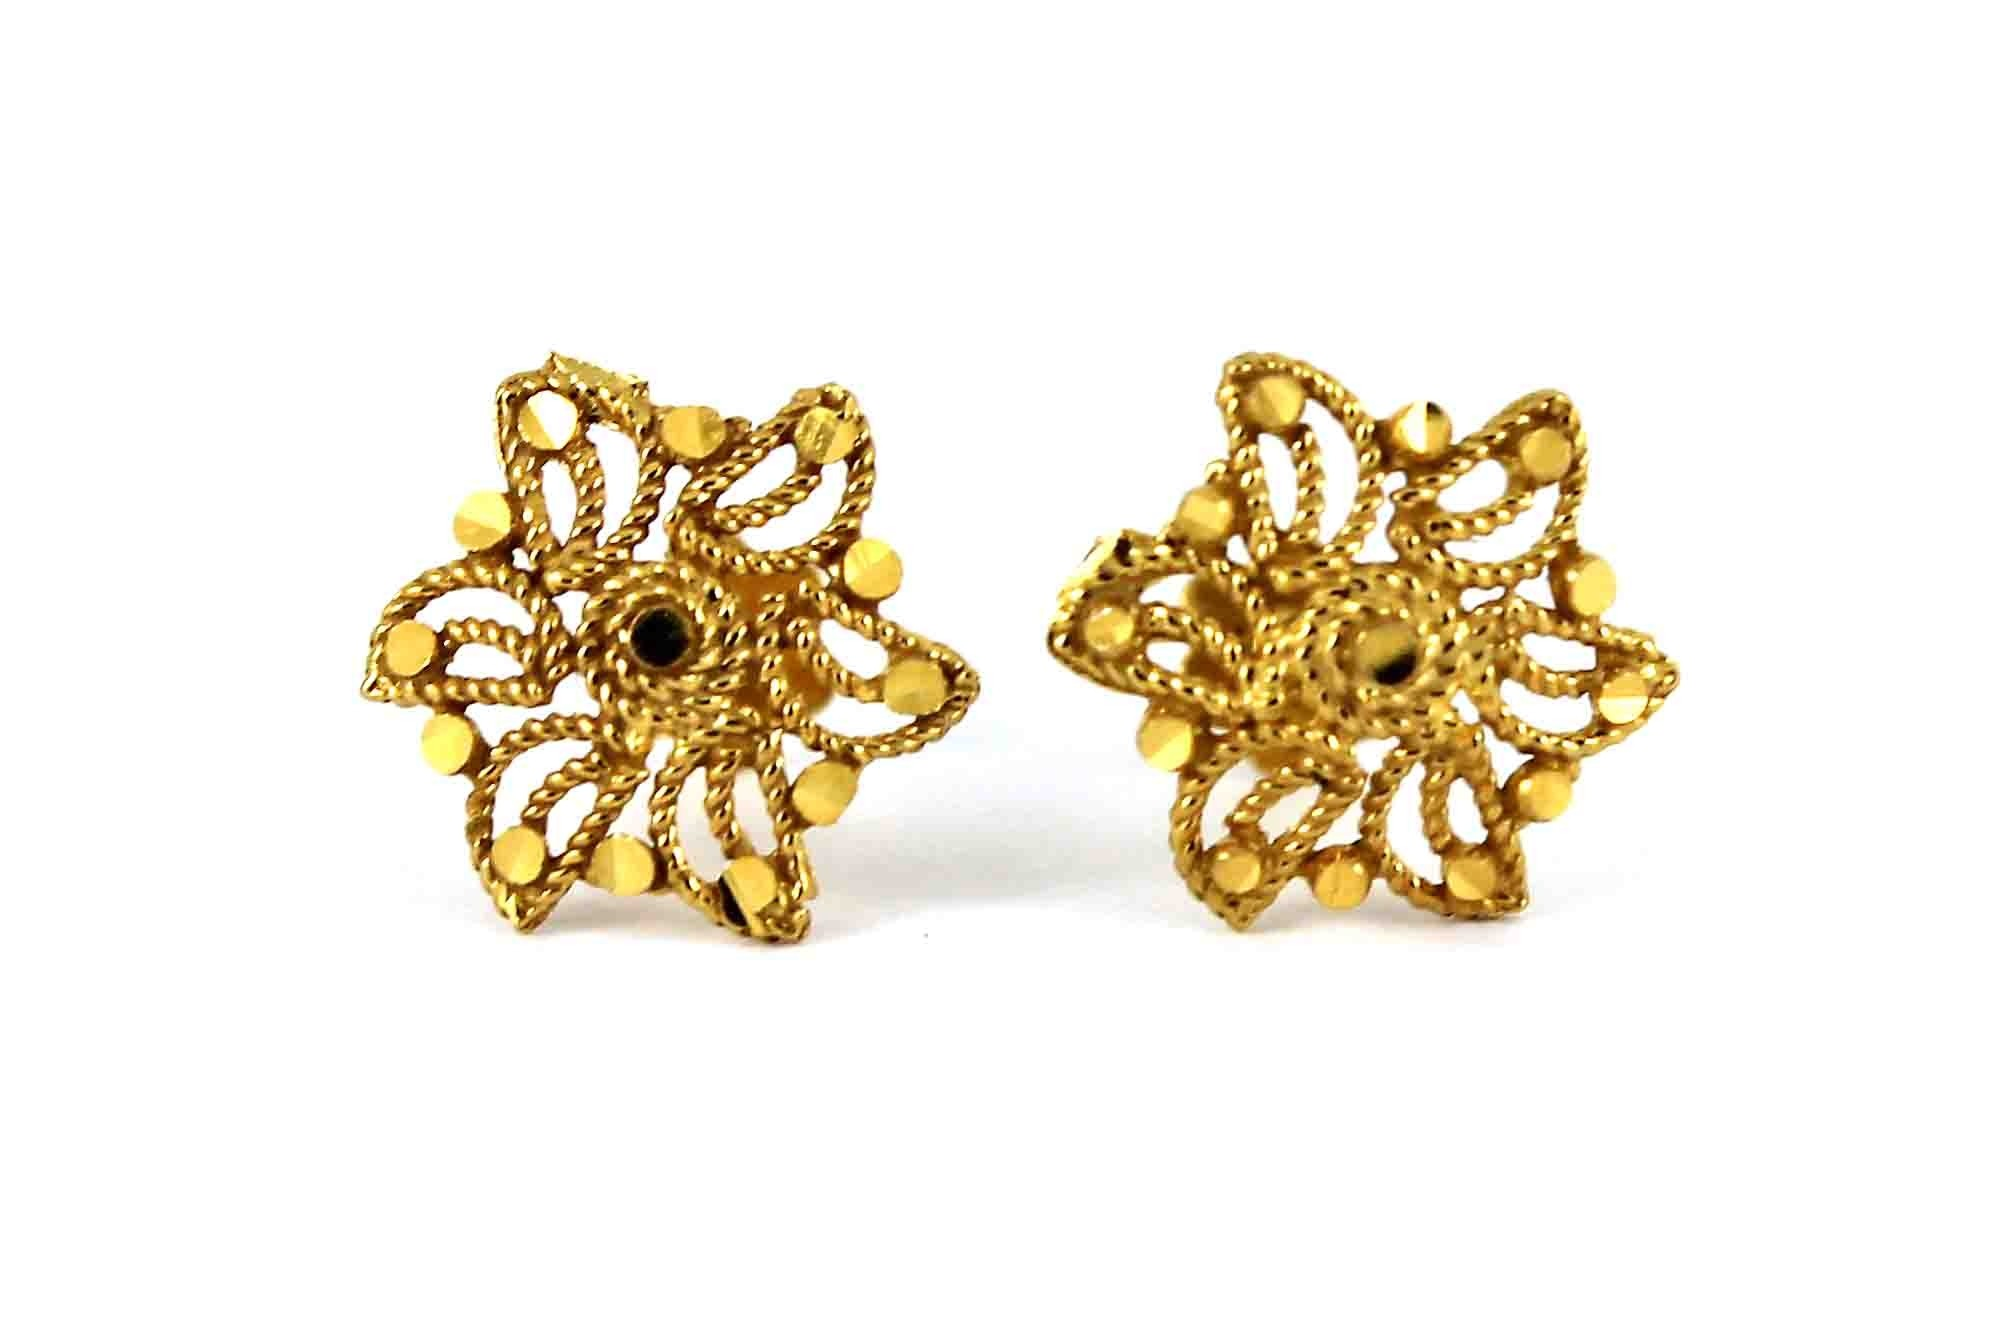 22ct 916 Yellow Gold Flower Small Kids Baby Stud Earrings SE115